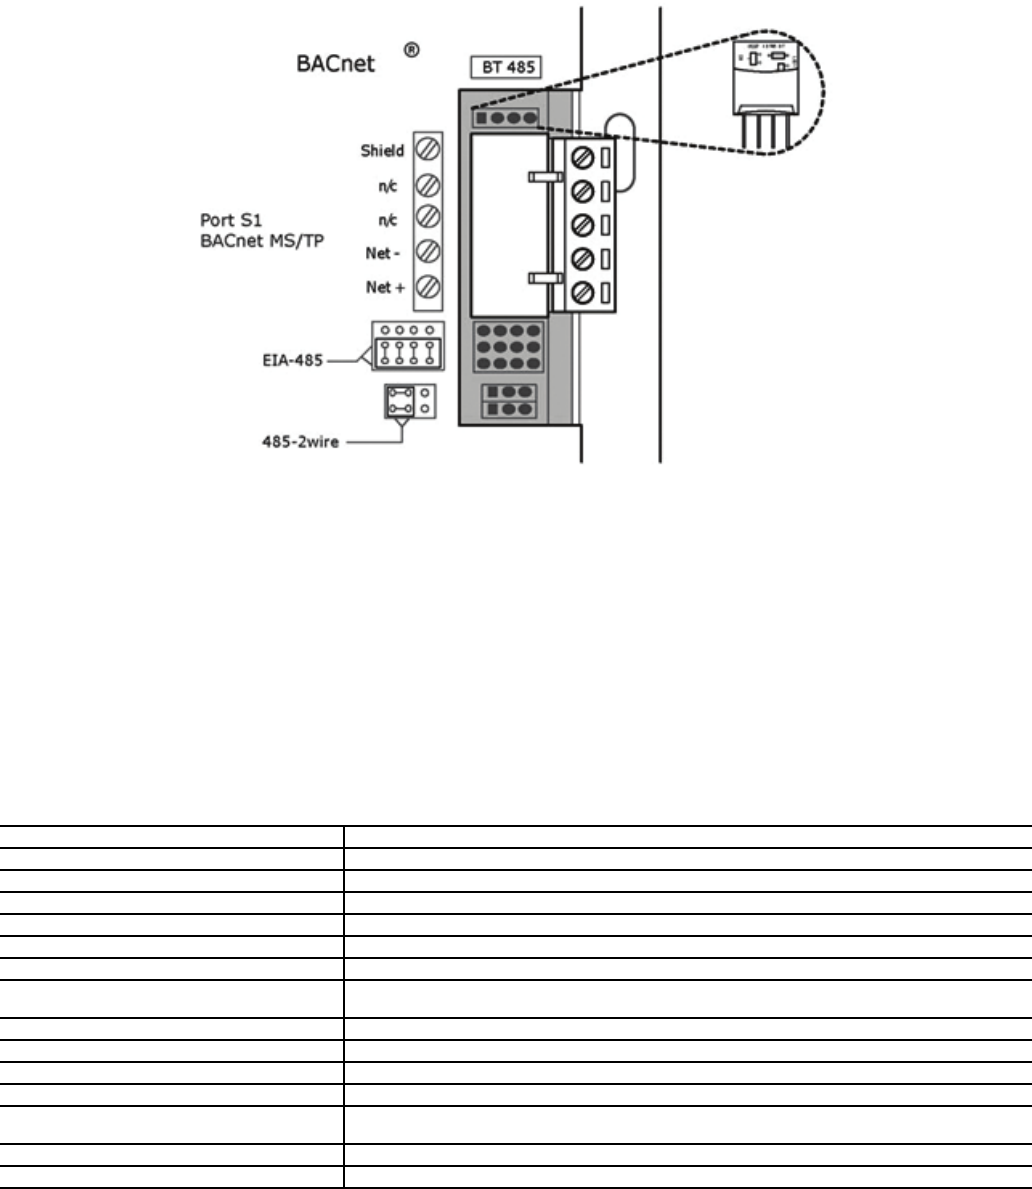 Carrier 30rap010 060 Page 104 Bacnet Ms Tp Wiring Guide